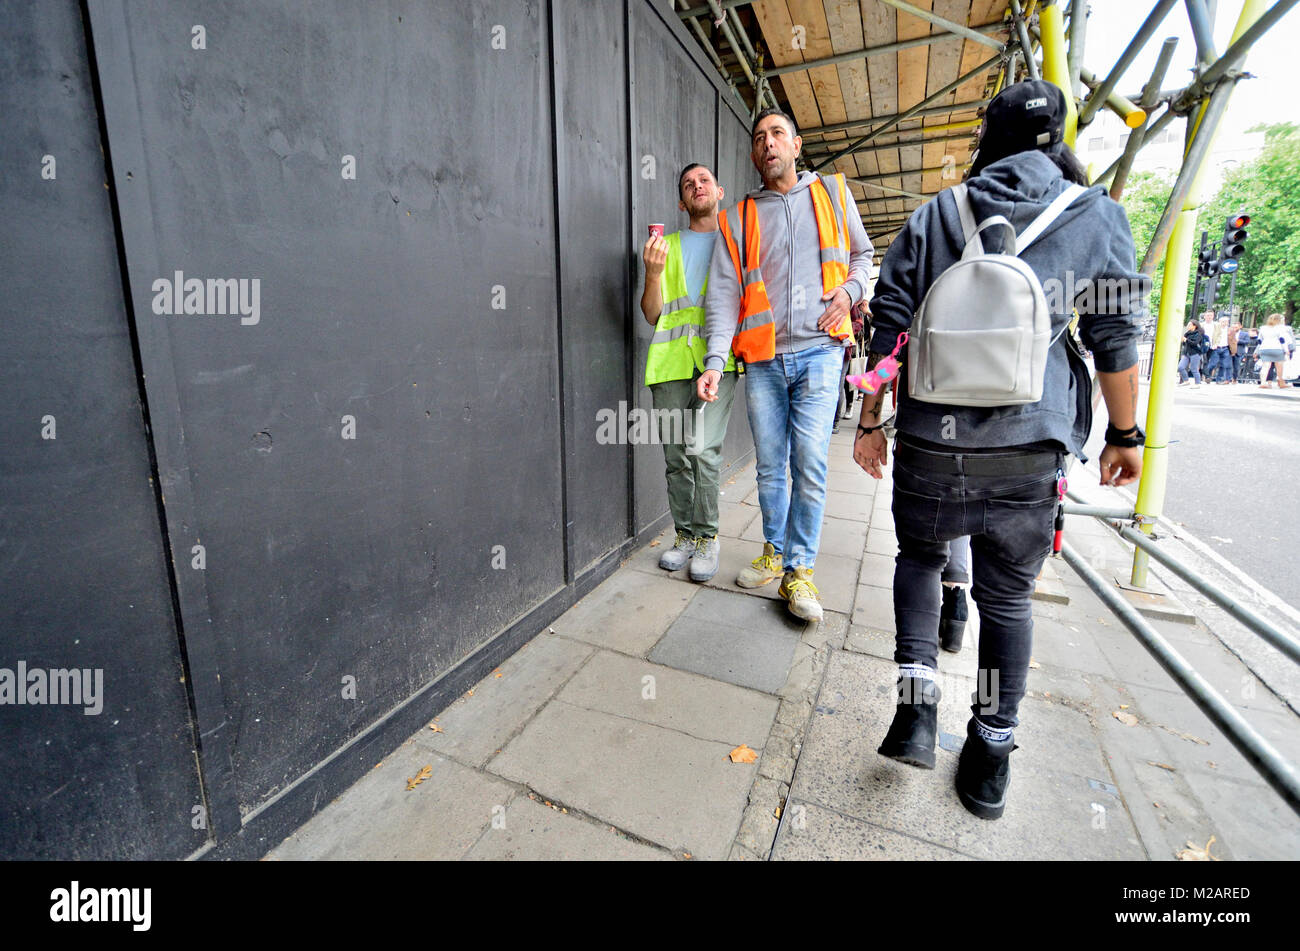 London, England, UK. Workmen in hi-vis jackets walking under scaffolding, one with a cigarette, one with coffee - Stock Image